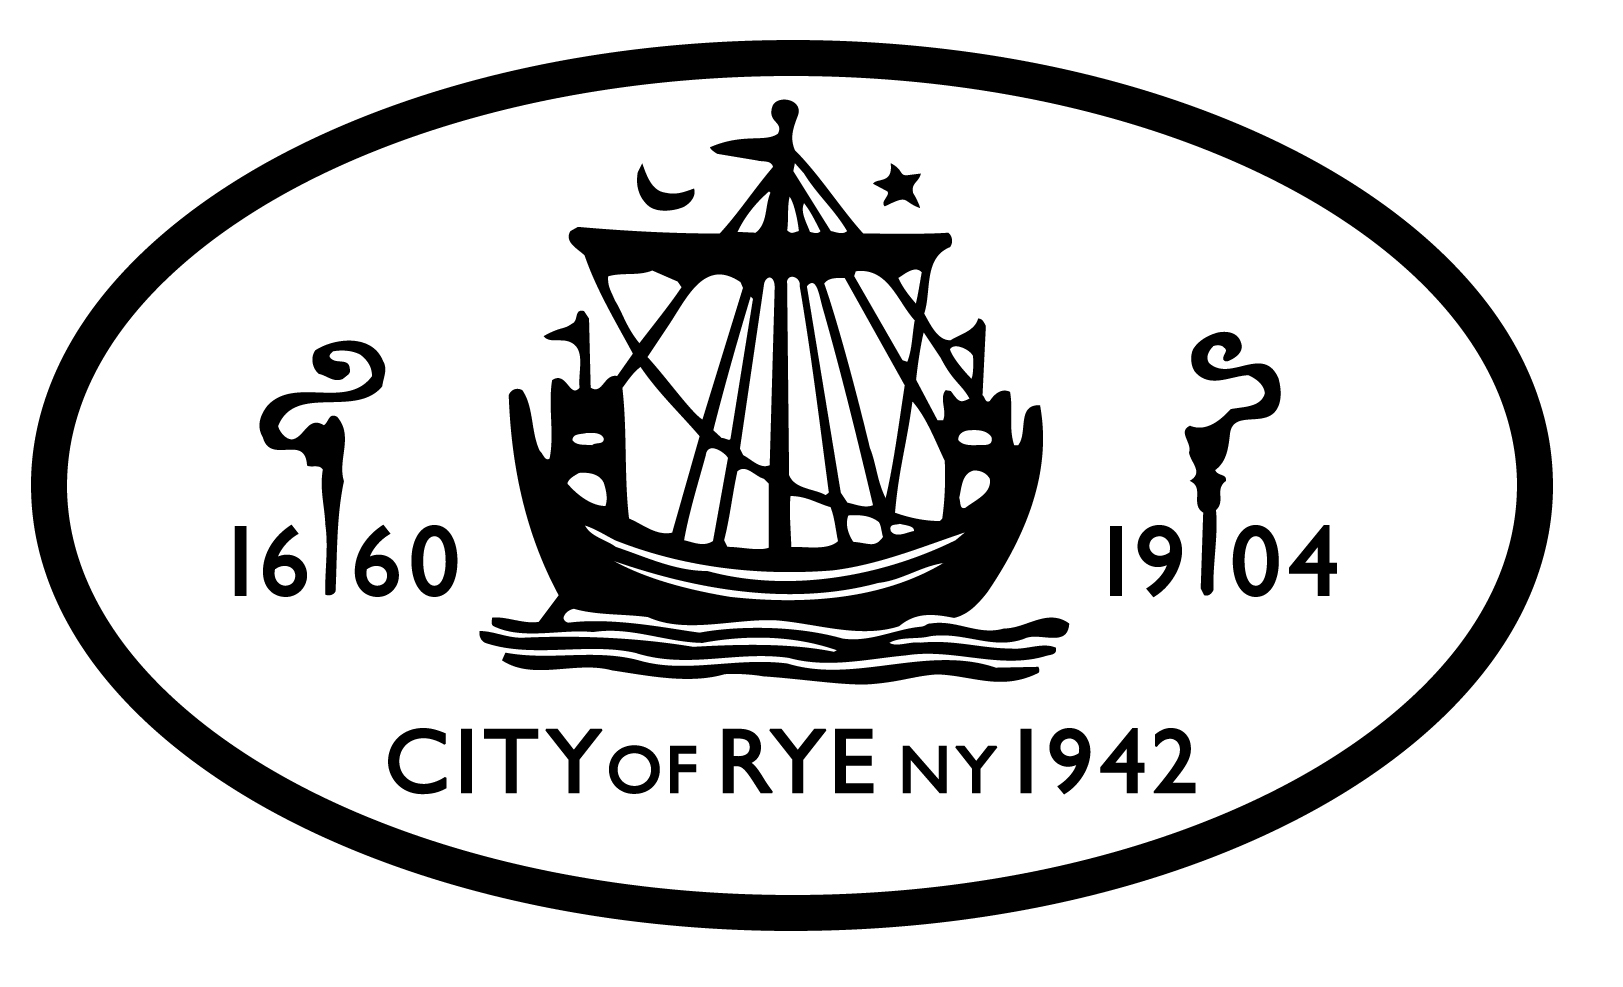 City of Rye